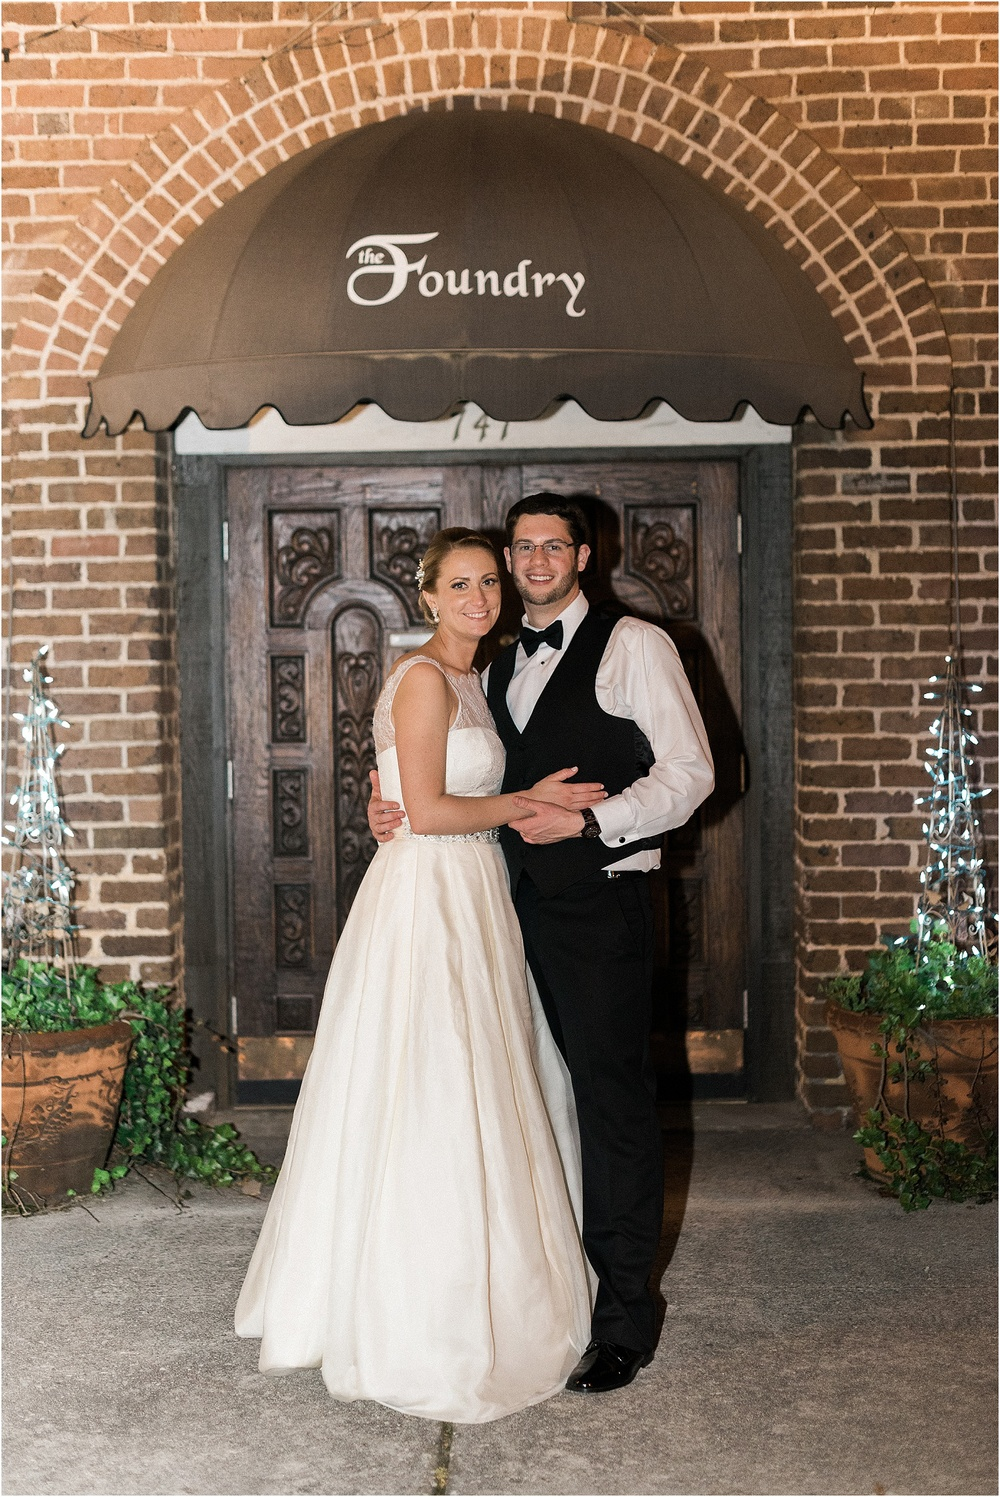 Worlds Fair Park and Foundry Wedding